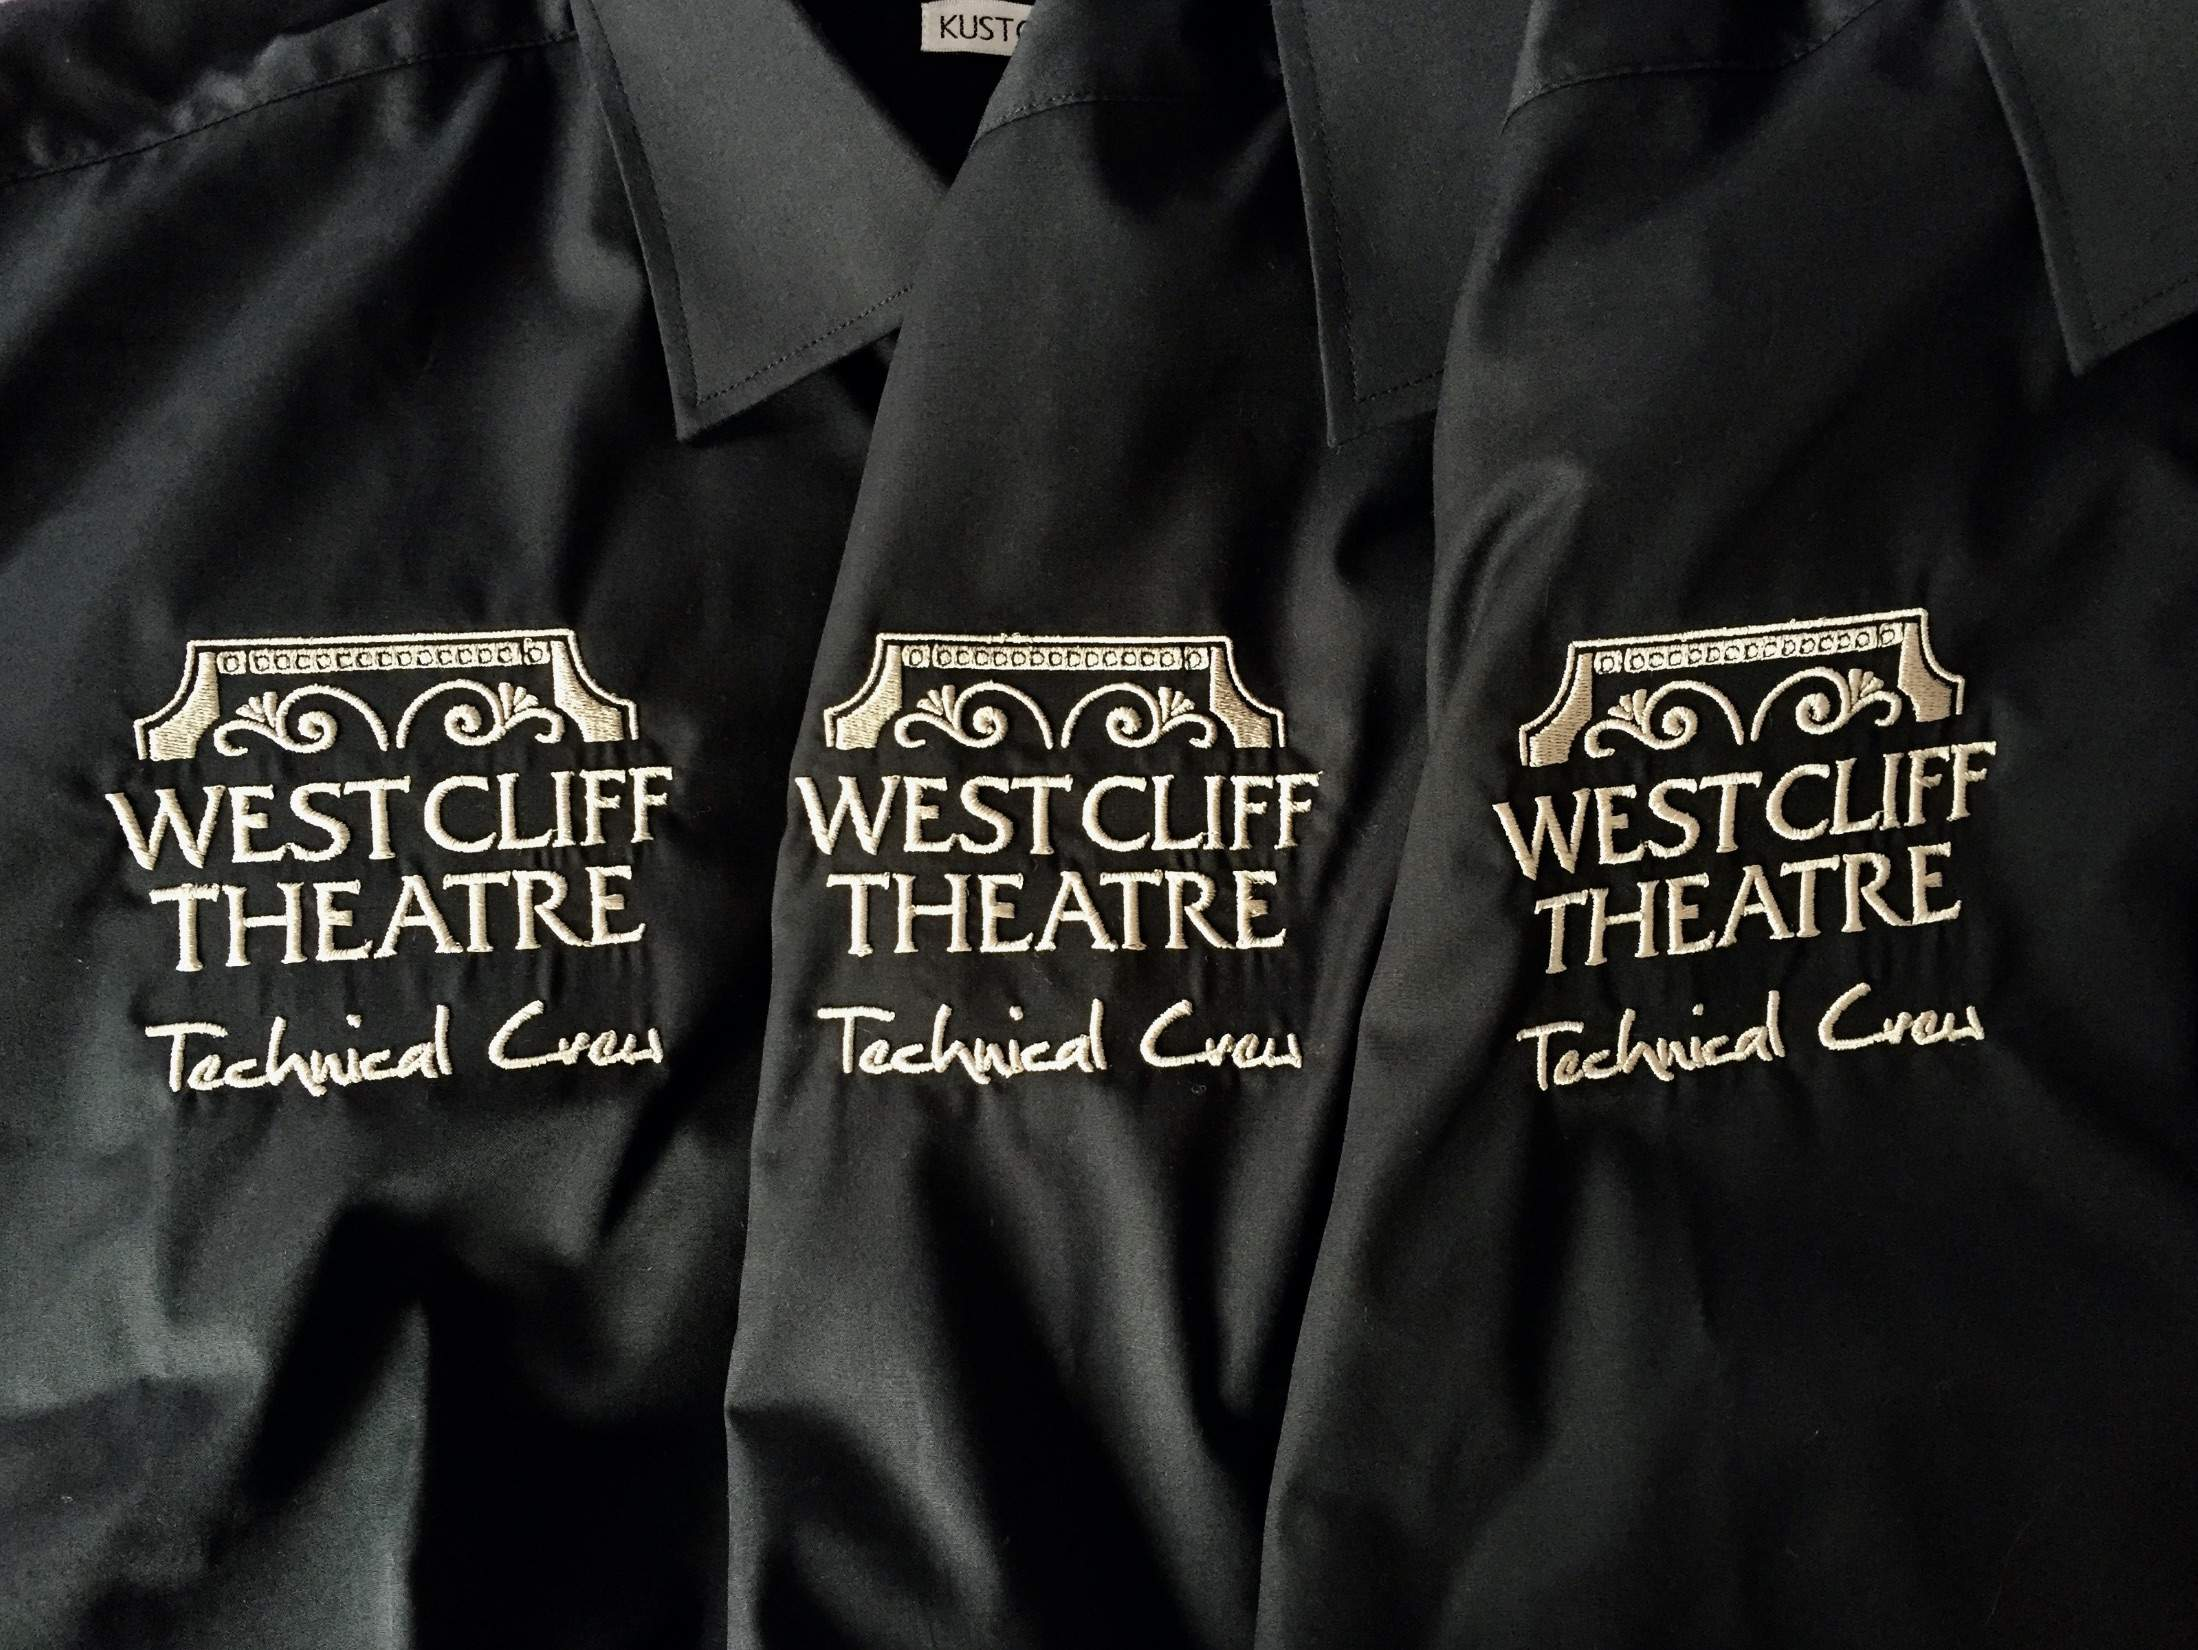 Westcliff theatre  embroidery & digitizing service logo embroidered clothing uniform & workwear t-shirts polos hoodies jackets clacton essex uk